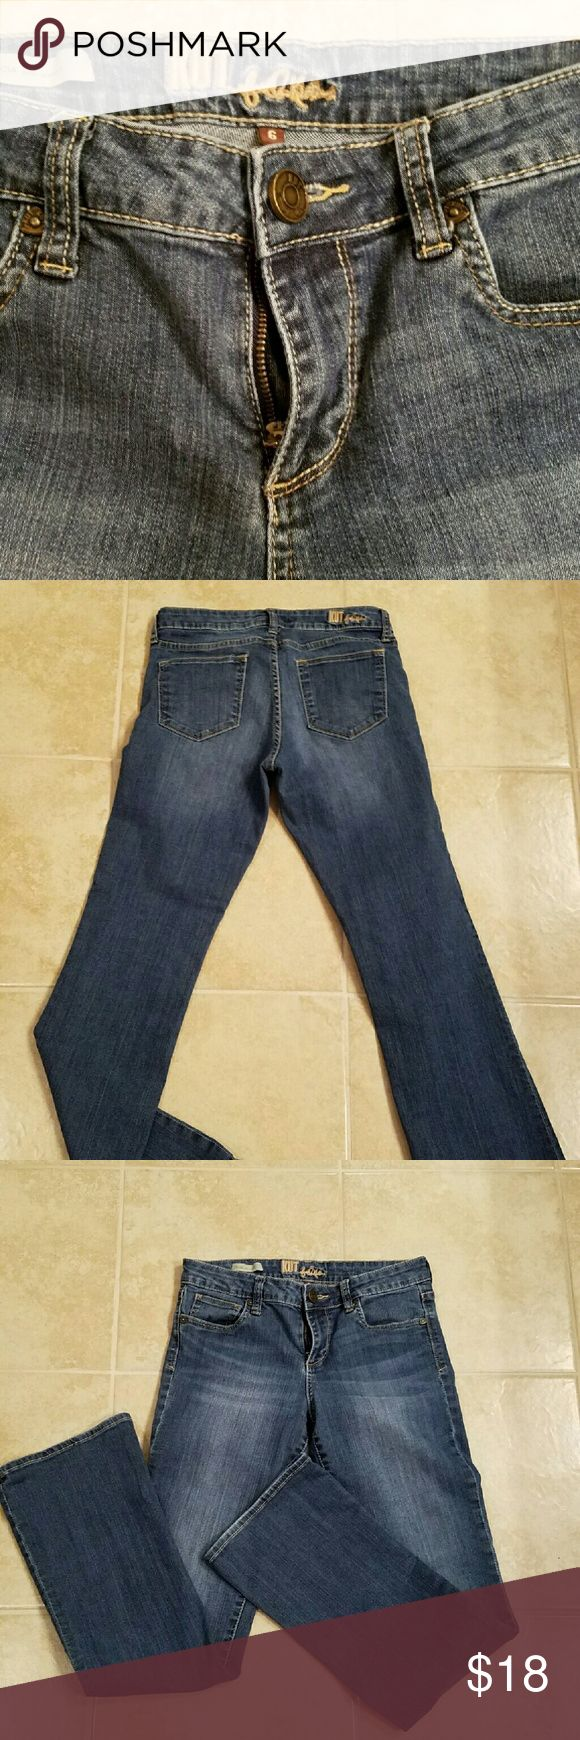 Kut Jeans Size 6, good used condition Jeans Boot Cut